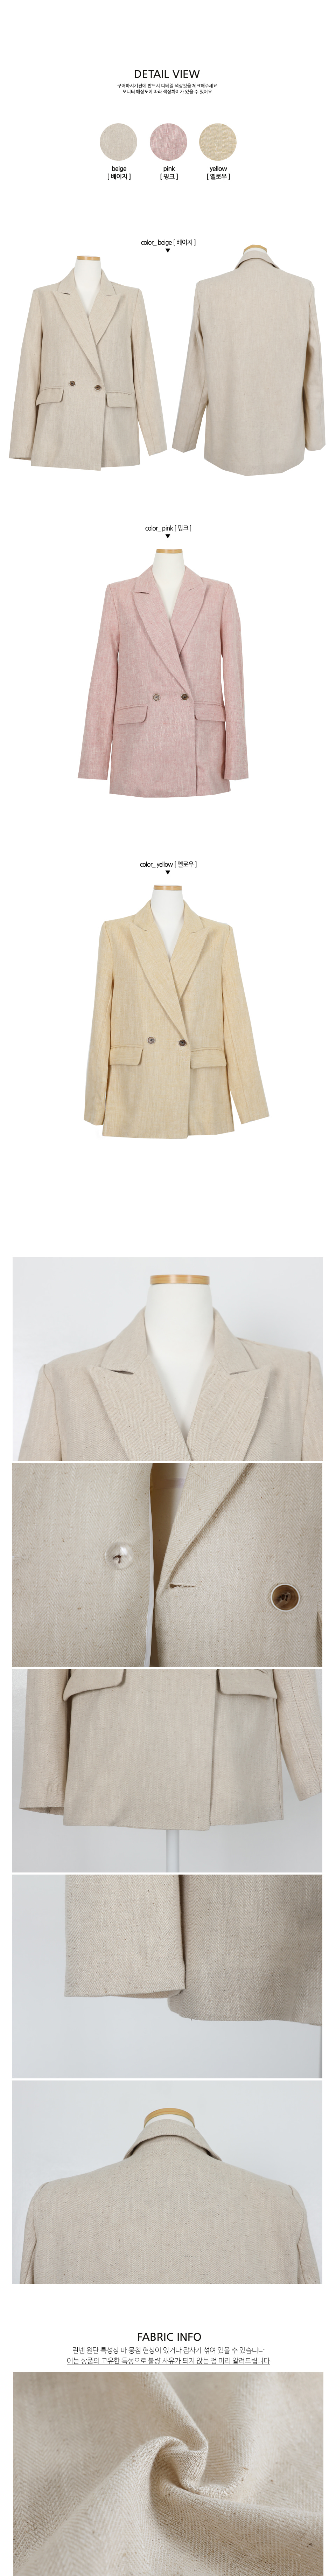 Lemon Herringbone Linen Jacket